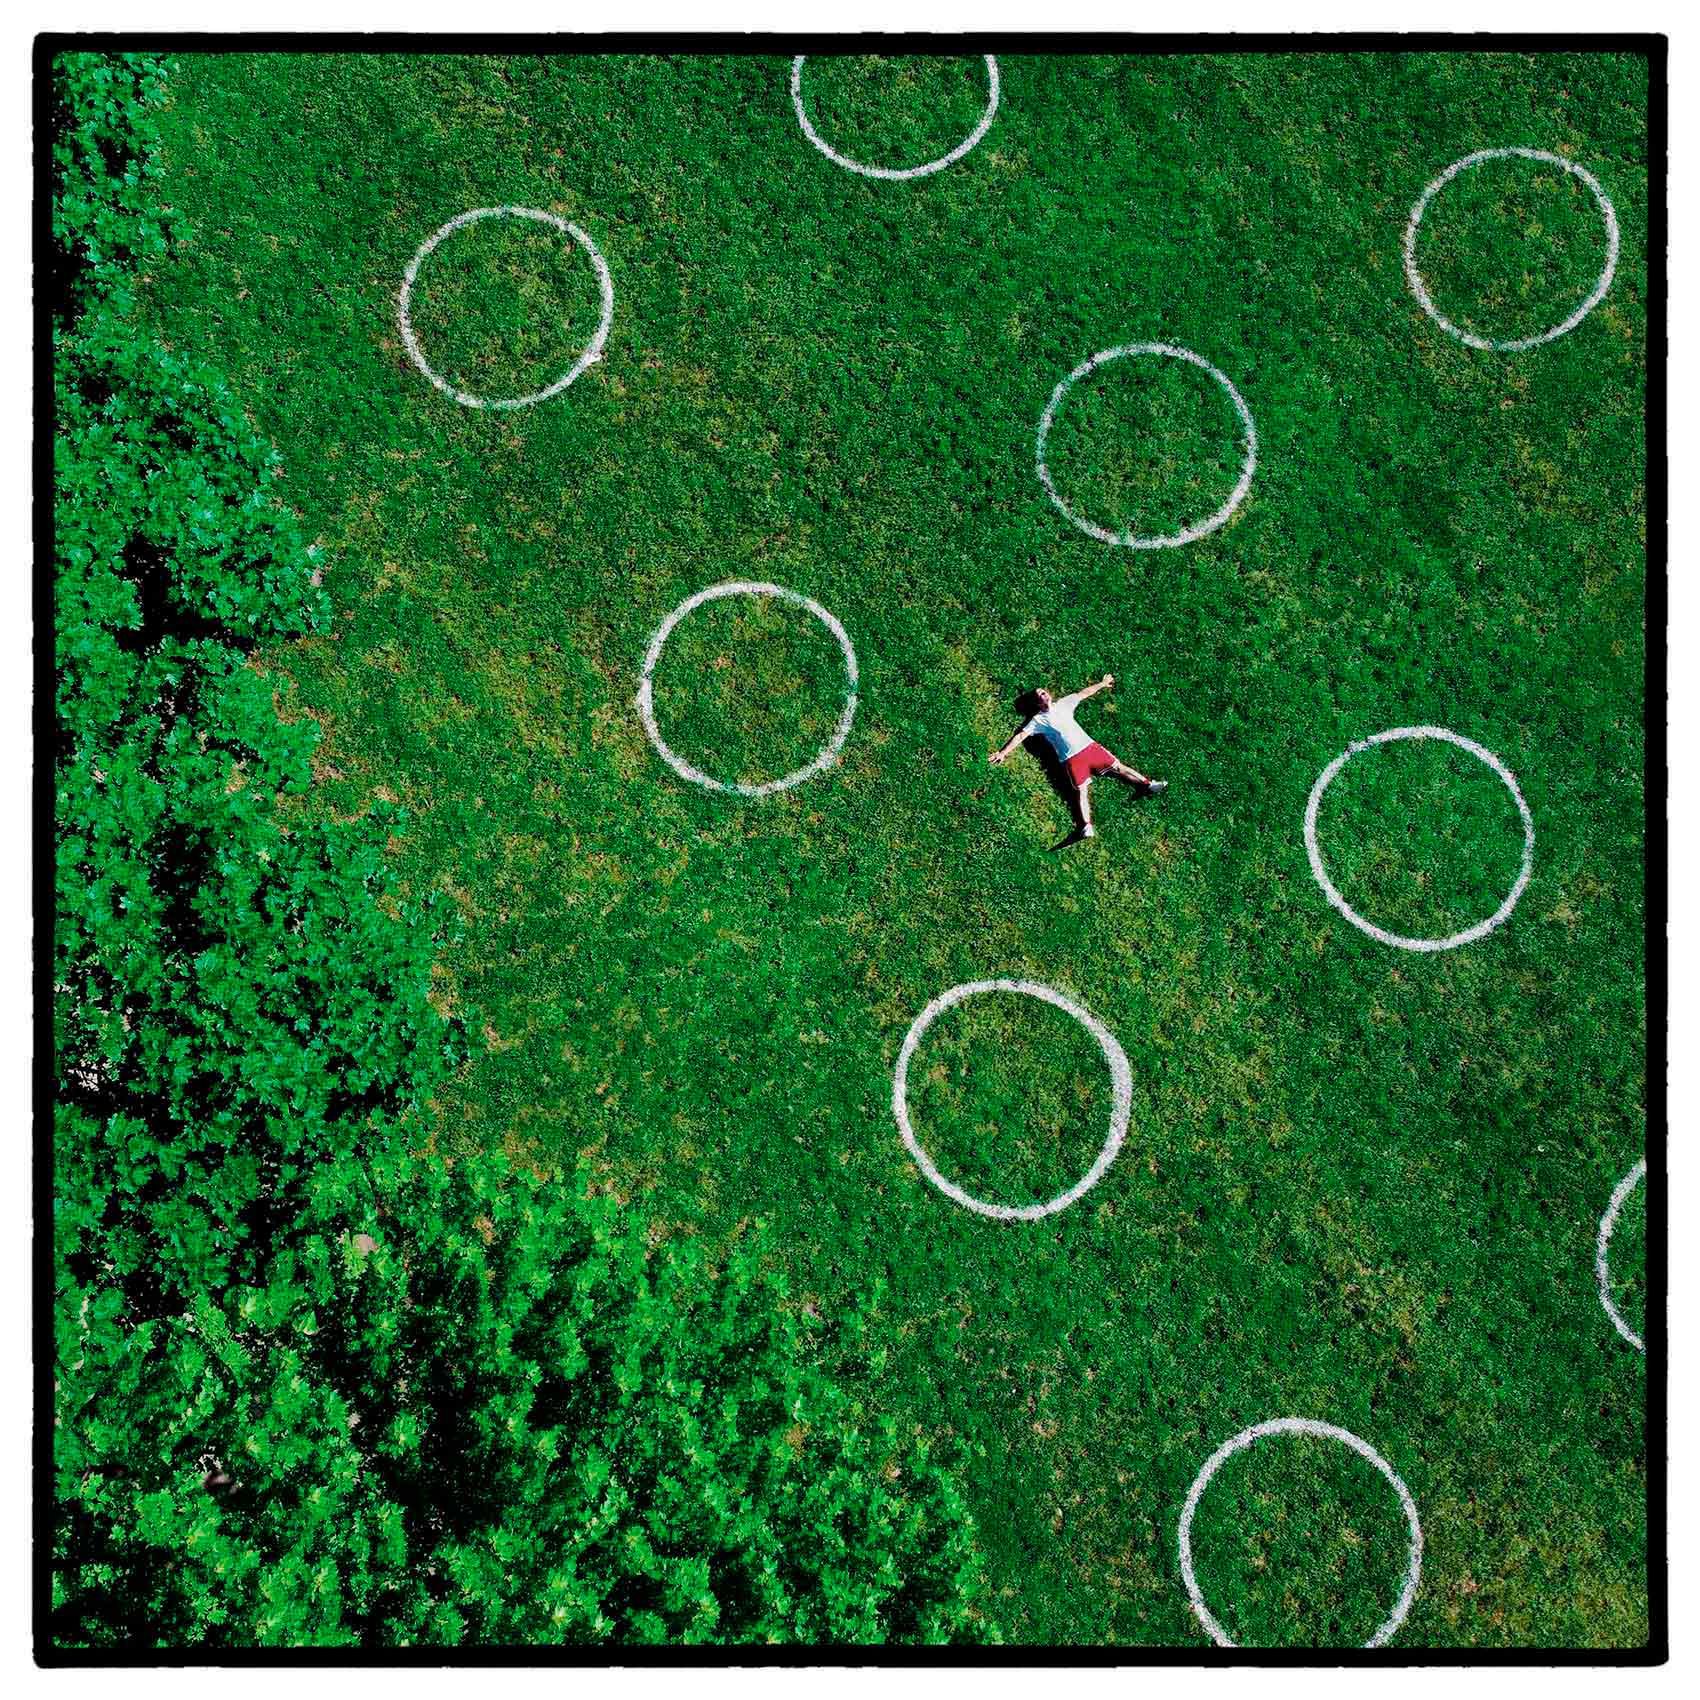 an-aerial-photo-of-a-man-inside-social-distancing-circles-at-trinity-bellwoods-park